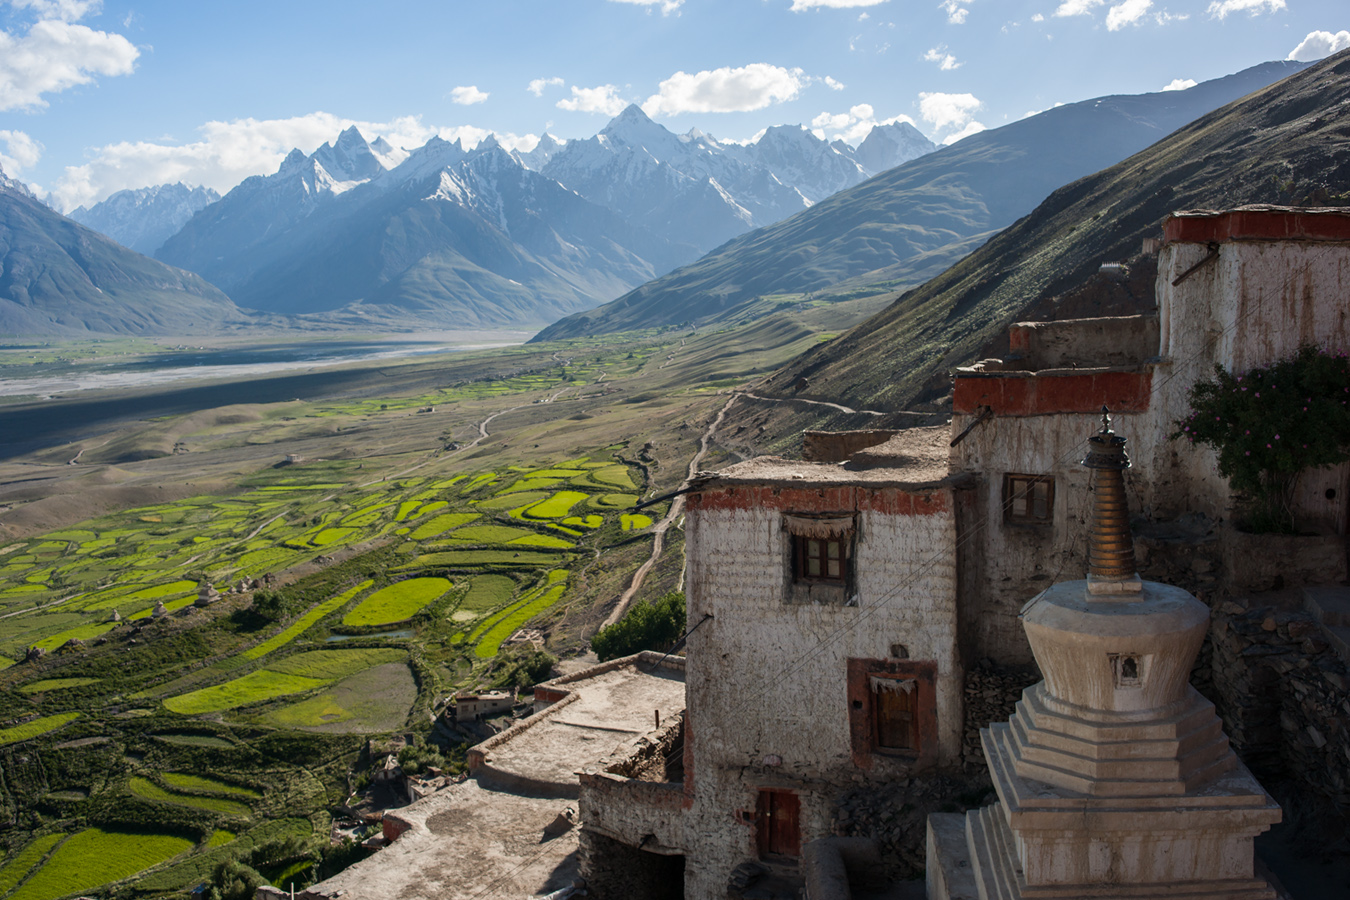 Padum — the capital of Zanskar — in the central valley, viewed from Karsha Gompa.